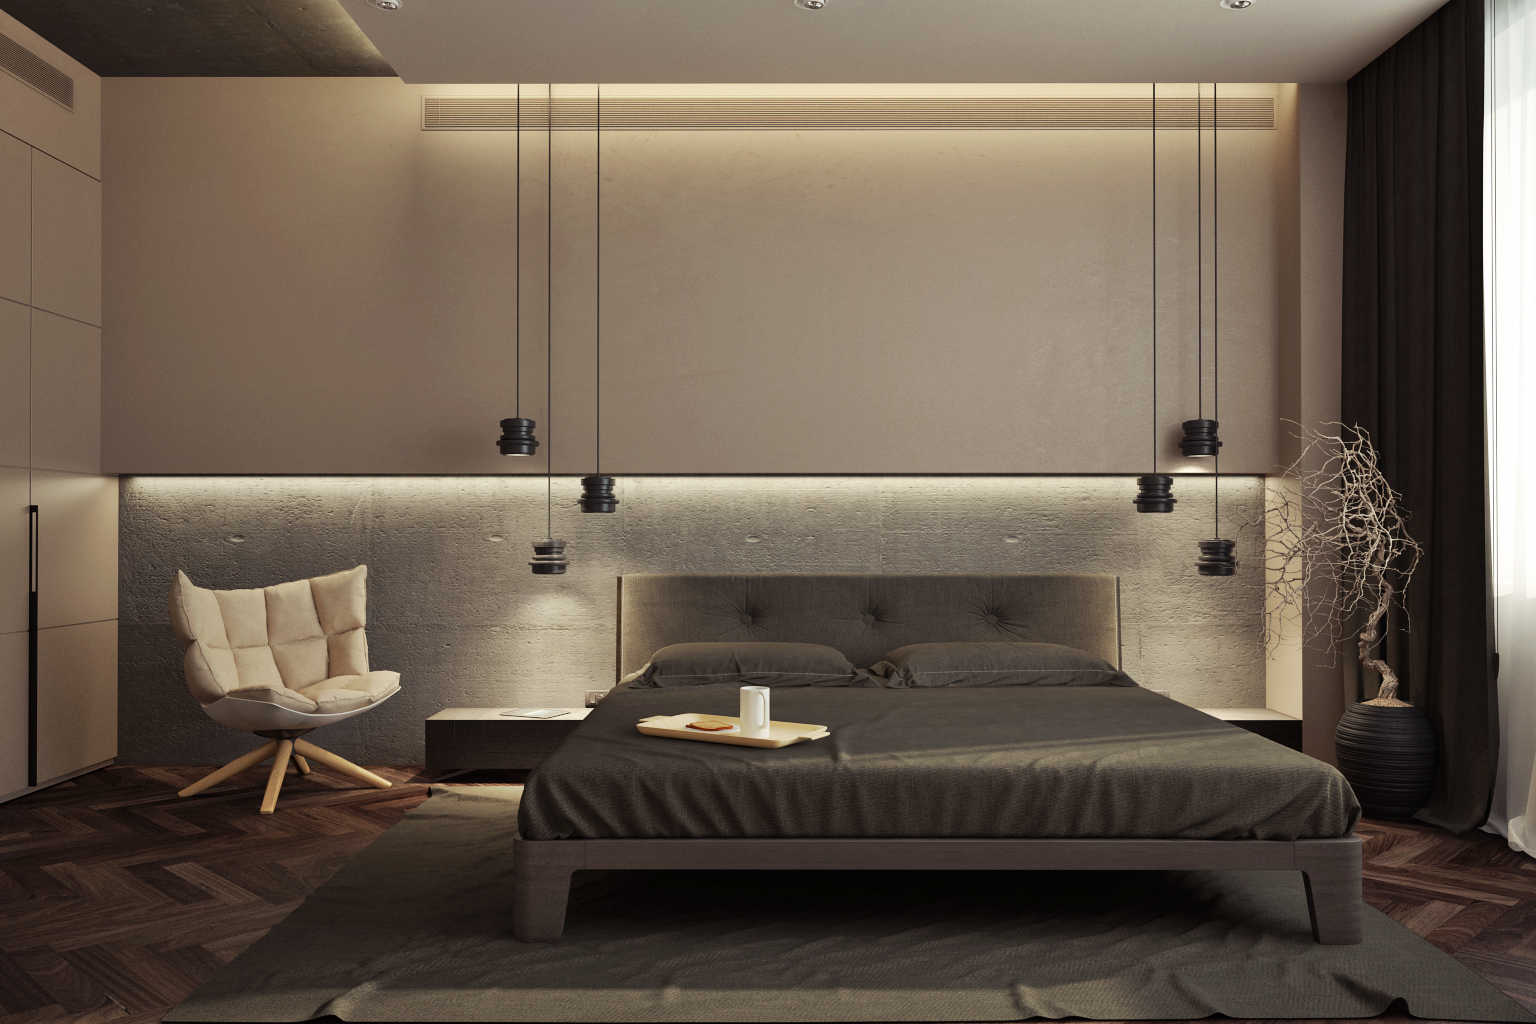 Best Yodezeen Google Search Bedroom Design Inspiration 400 x 300